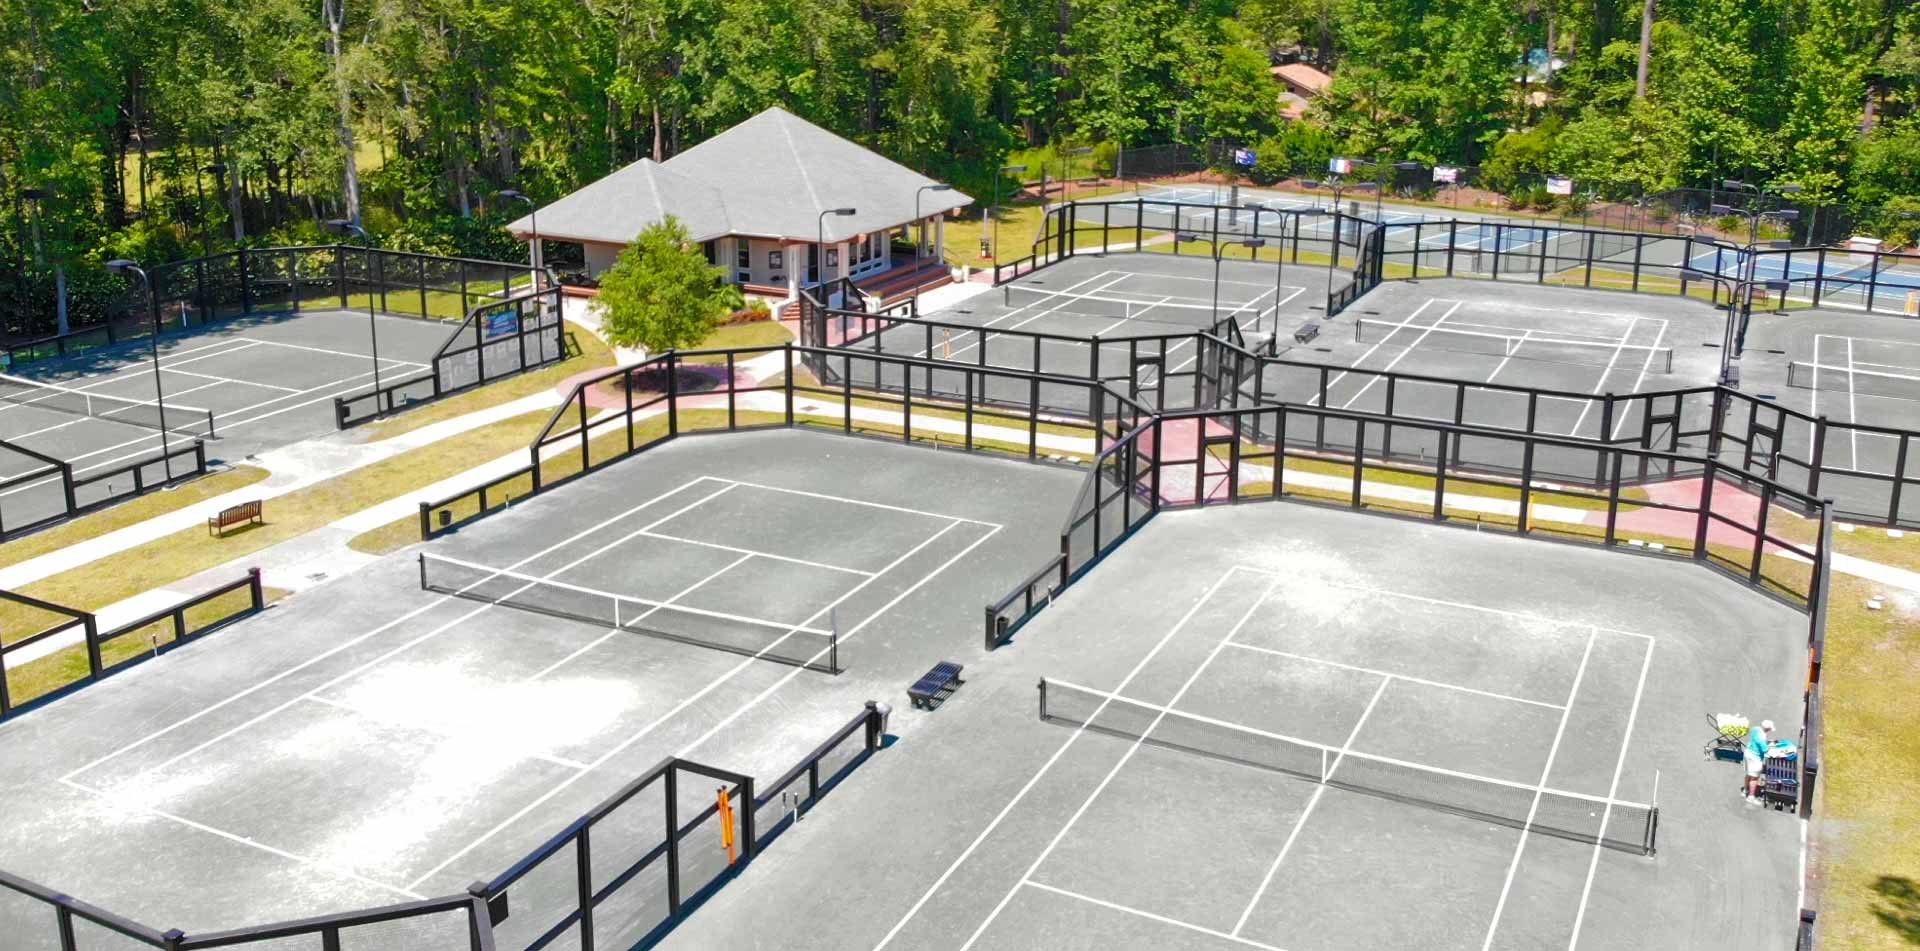 VIew of TLC Tennis facility